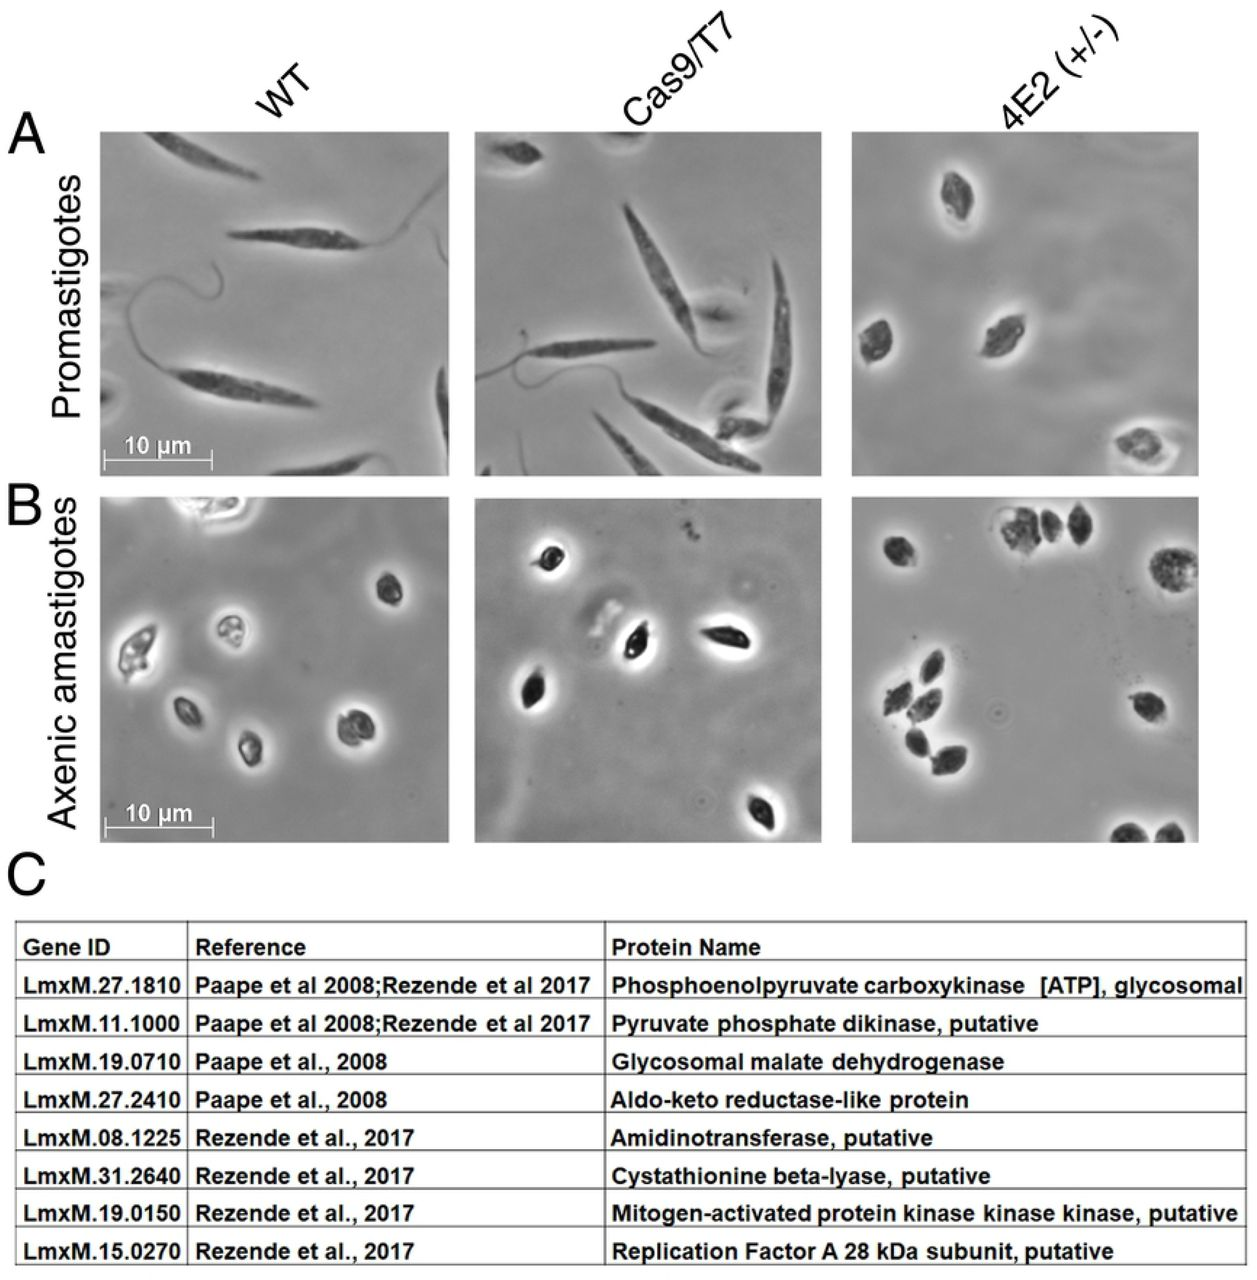 LeishIF4E2(+/-) mutant cells easily transform to axenic amastigote-like cells. (A) Promastigotes of the LeishIF4E2(+/-) mutant, control wild type, and Cas9/T7 expressing cells grown under normal conditions are shown. (B) Morphology of cells transferred to conditions that induce differentiation to axenic-amastigotes (33°C/pH 5.5) during four days. Images were captured at100x magnification with a Zeiss Axiovert 200M microscope equipped with AxioCam HRm CCD camera. The scale bar is 10 µm. (C) Upregulated proteins in the mutant LeishIF4E2(+/-) promastigotes (compared to WT cells) and in published amastigotes proteome. The total protein of the LeishIF4E2(+/-) mutant promastigotes was compared to the proteome of WT cells. The list of upregulated proteins was further compared with the proteins enriched in the amastigote proteome of virulent L. amazonensis PH8 strain (de Rezende et al, PLOS NTD 2017). and of L. mexicana amastigotes (Paape et al, Mol Cell Prot 2008).